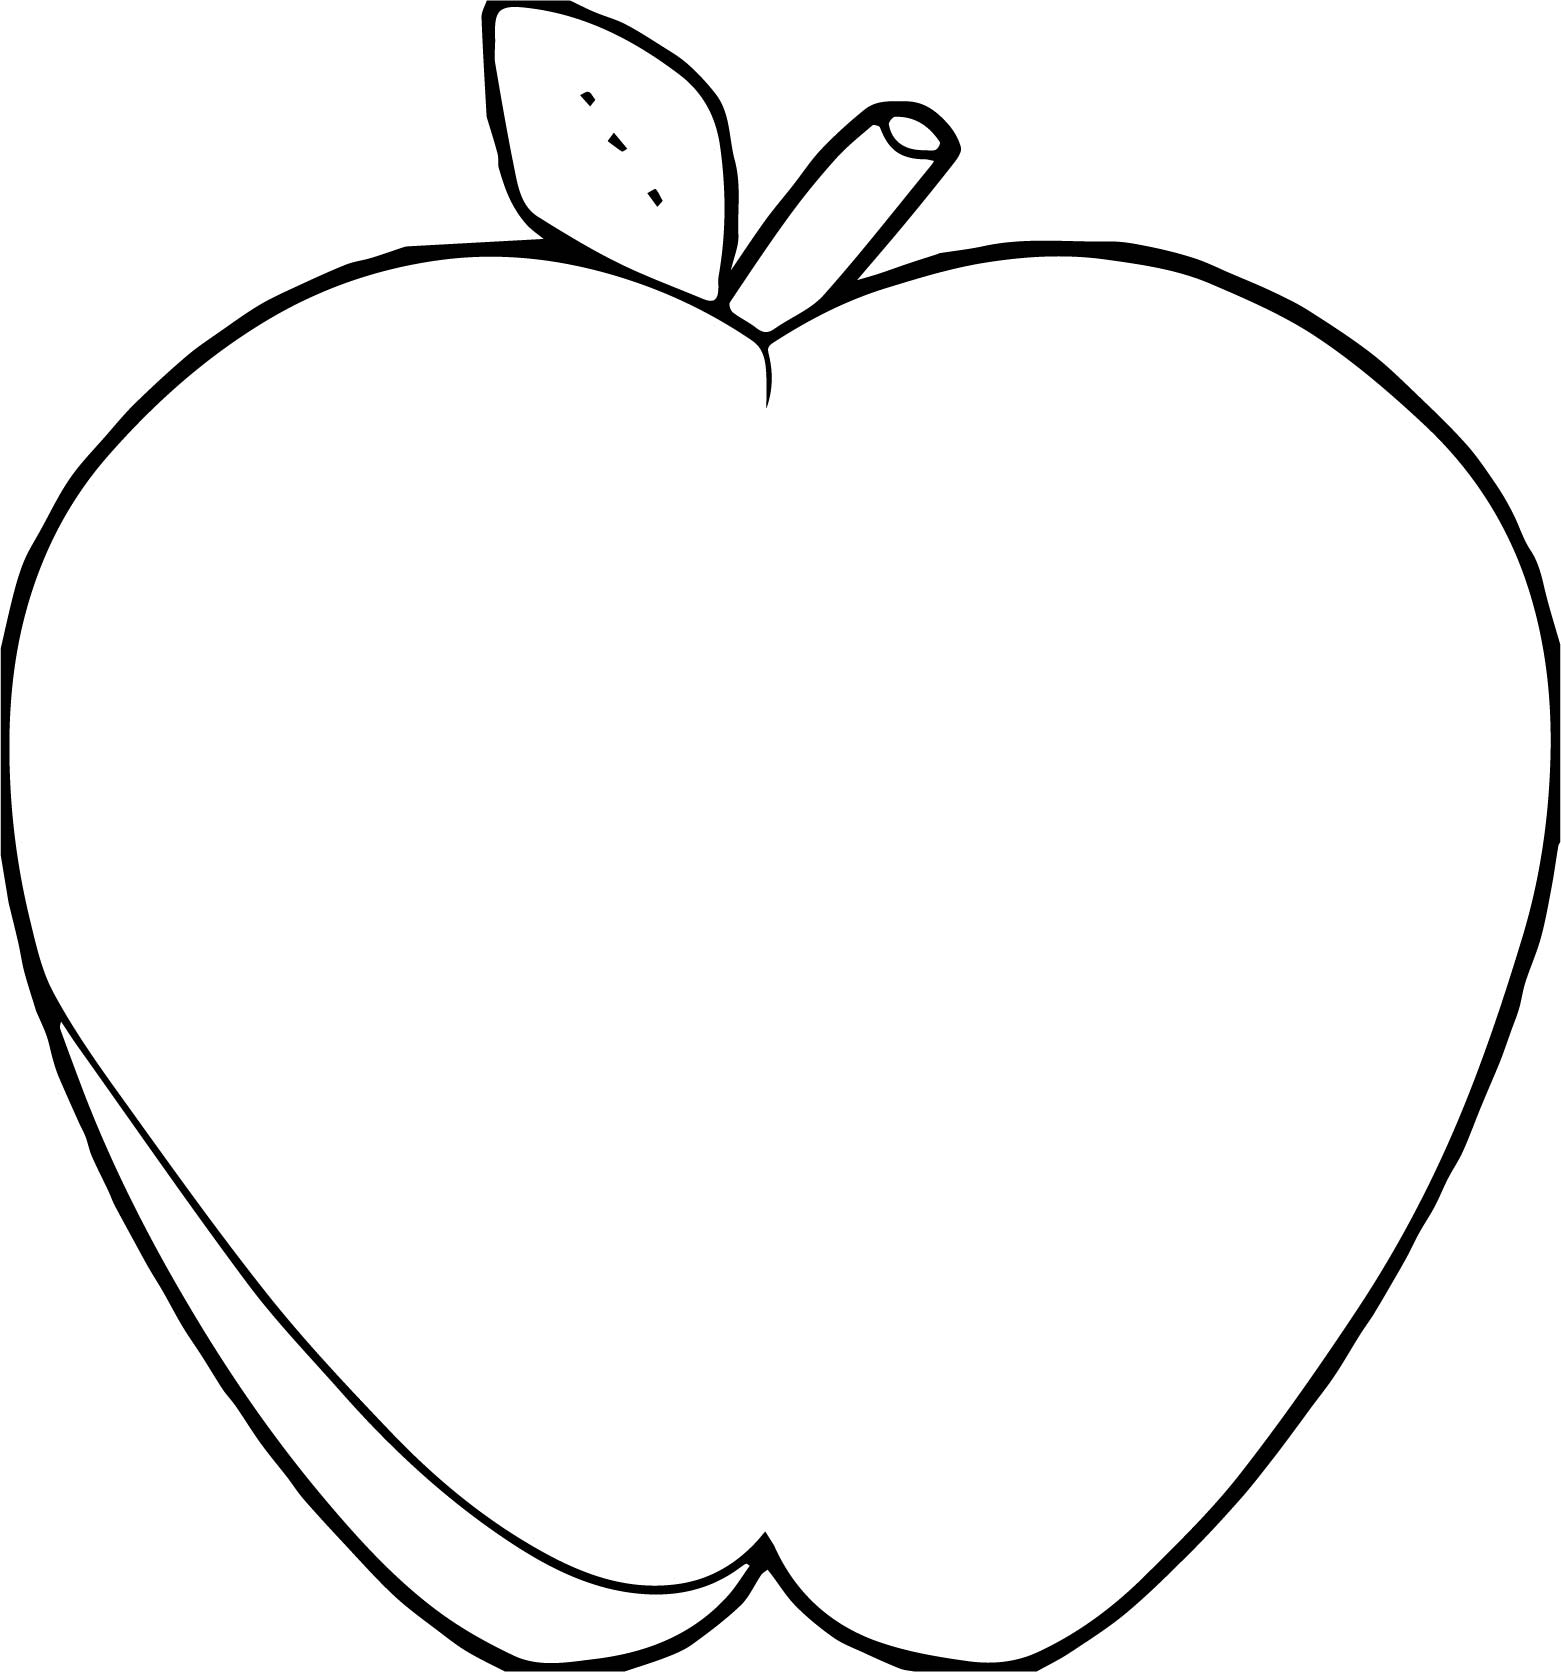 Apples Free Printable Templates & Coloring Pages